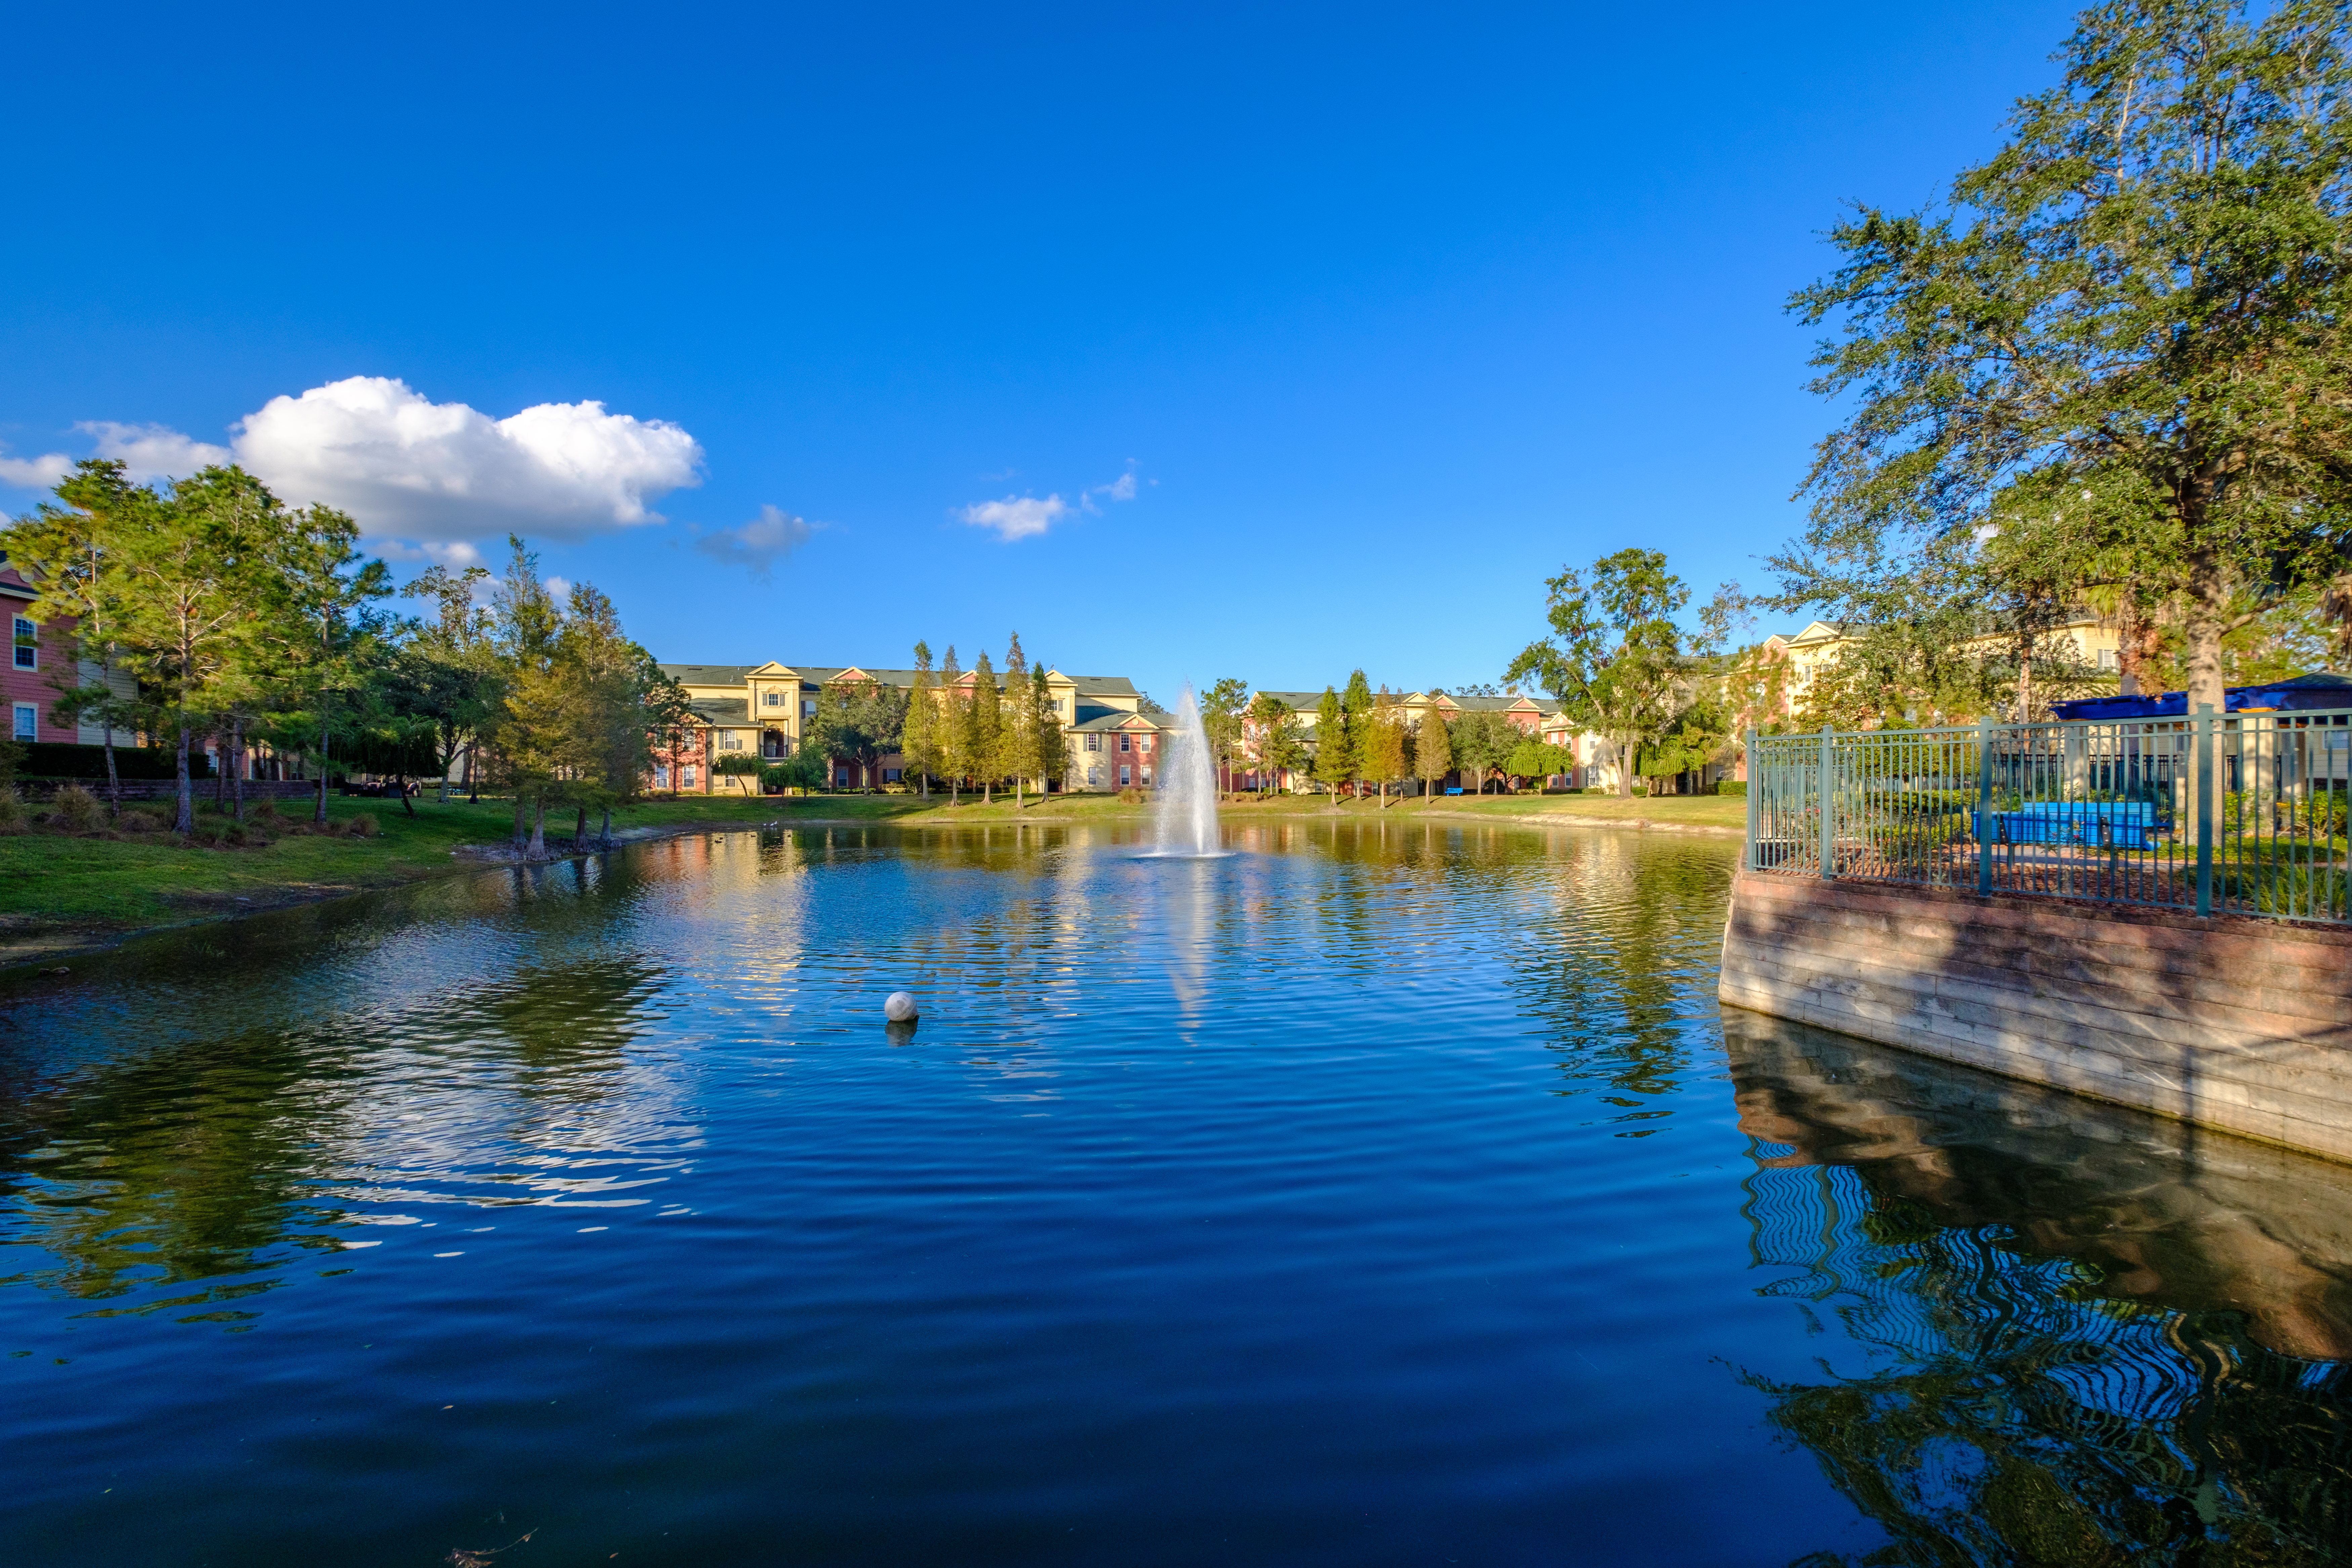 Victoria-Landing-Lake-and-Fountain-4